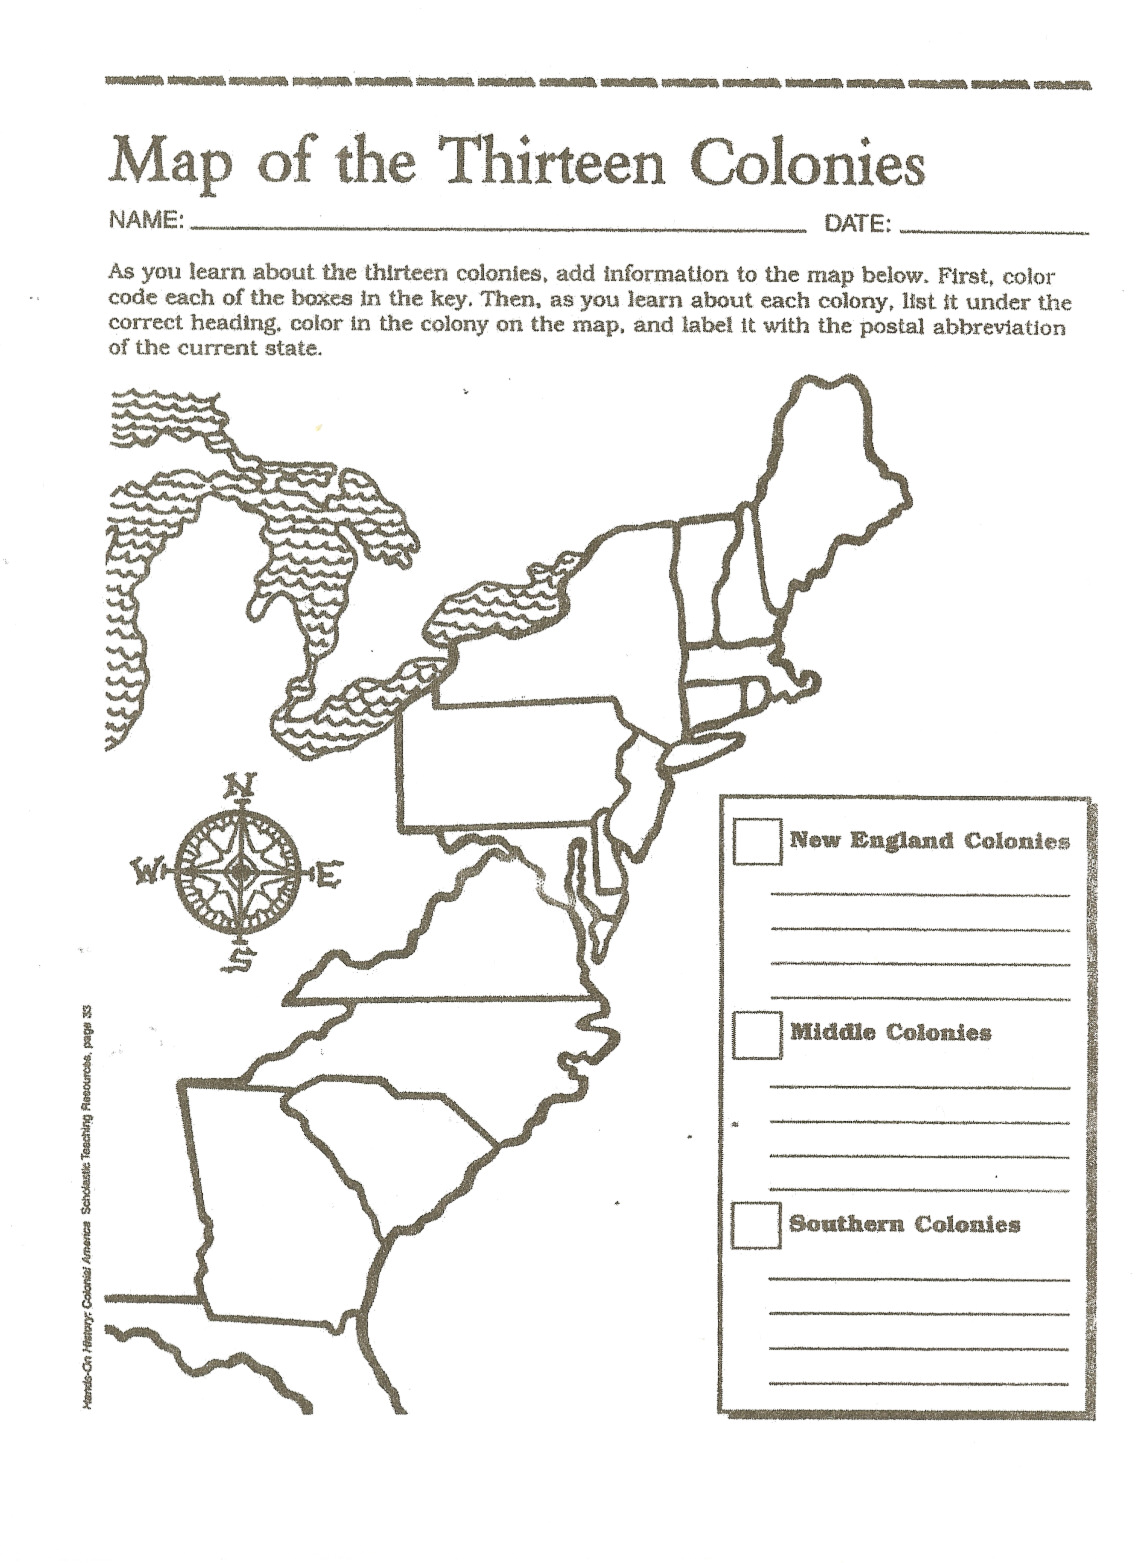 Workbooks thirteen colonies worksheets : Thirteen Colonies | Map of the Thirteen Colonies | Paul Revere ...